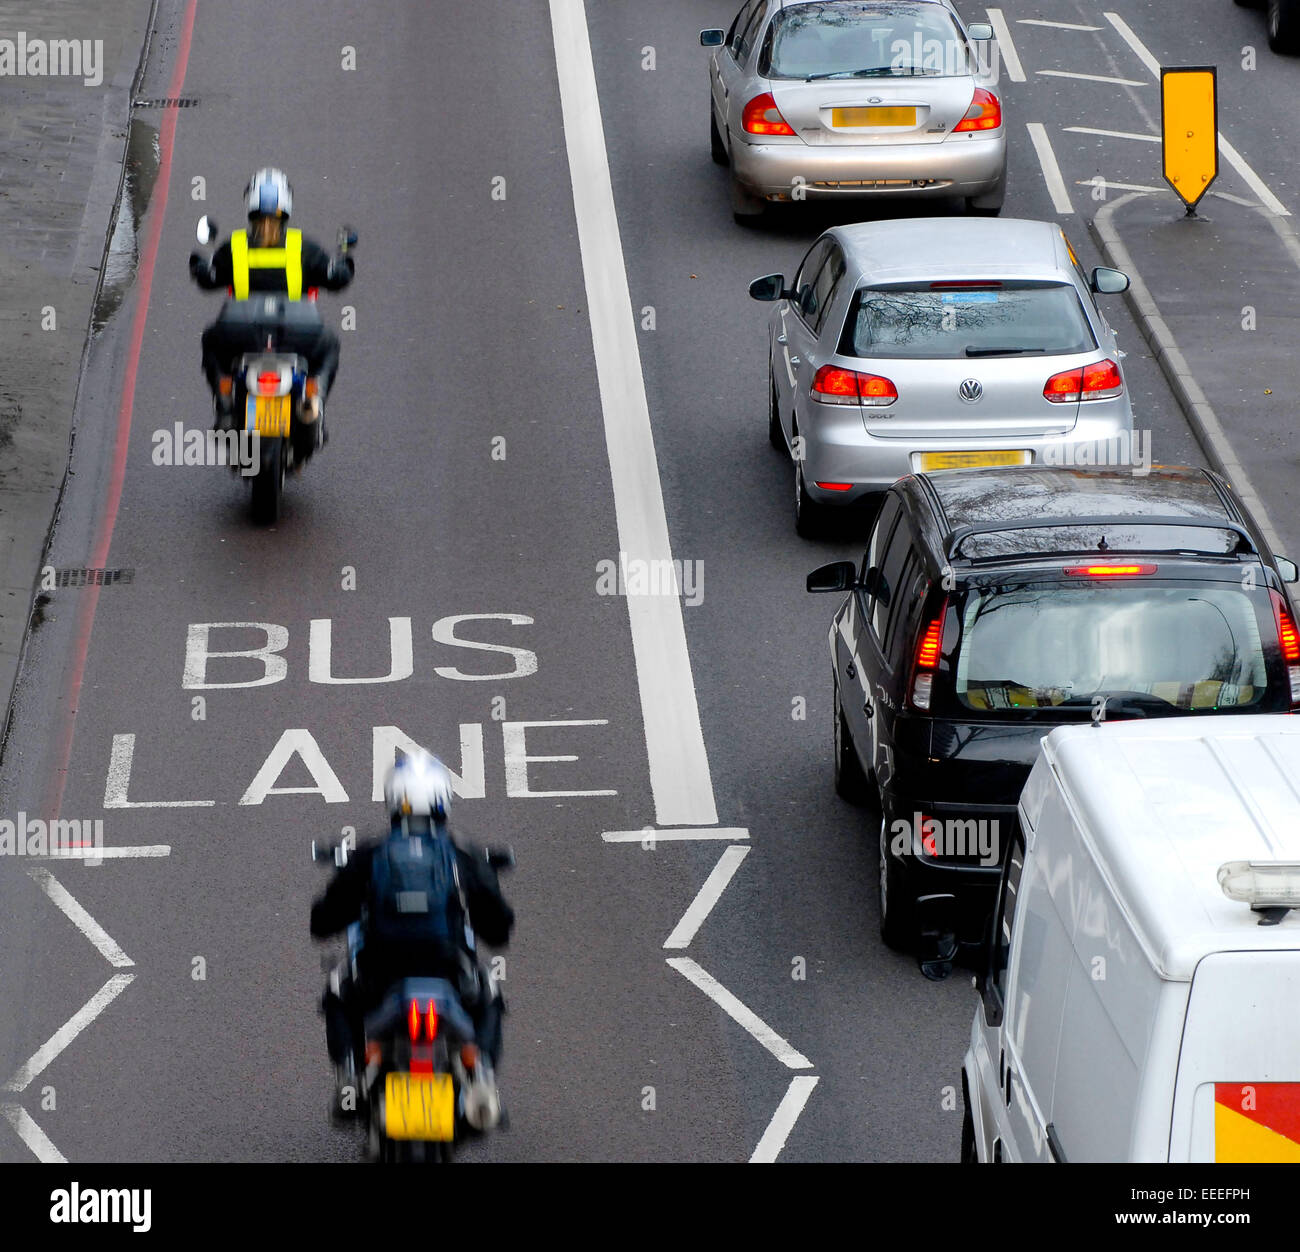 Cars stationary whilst motorbikes drive pass on the bus lane - Stock Image